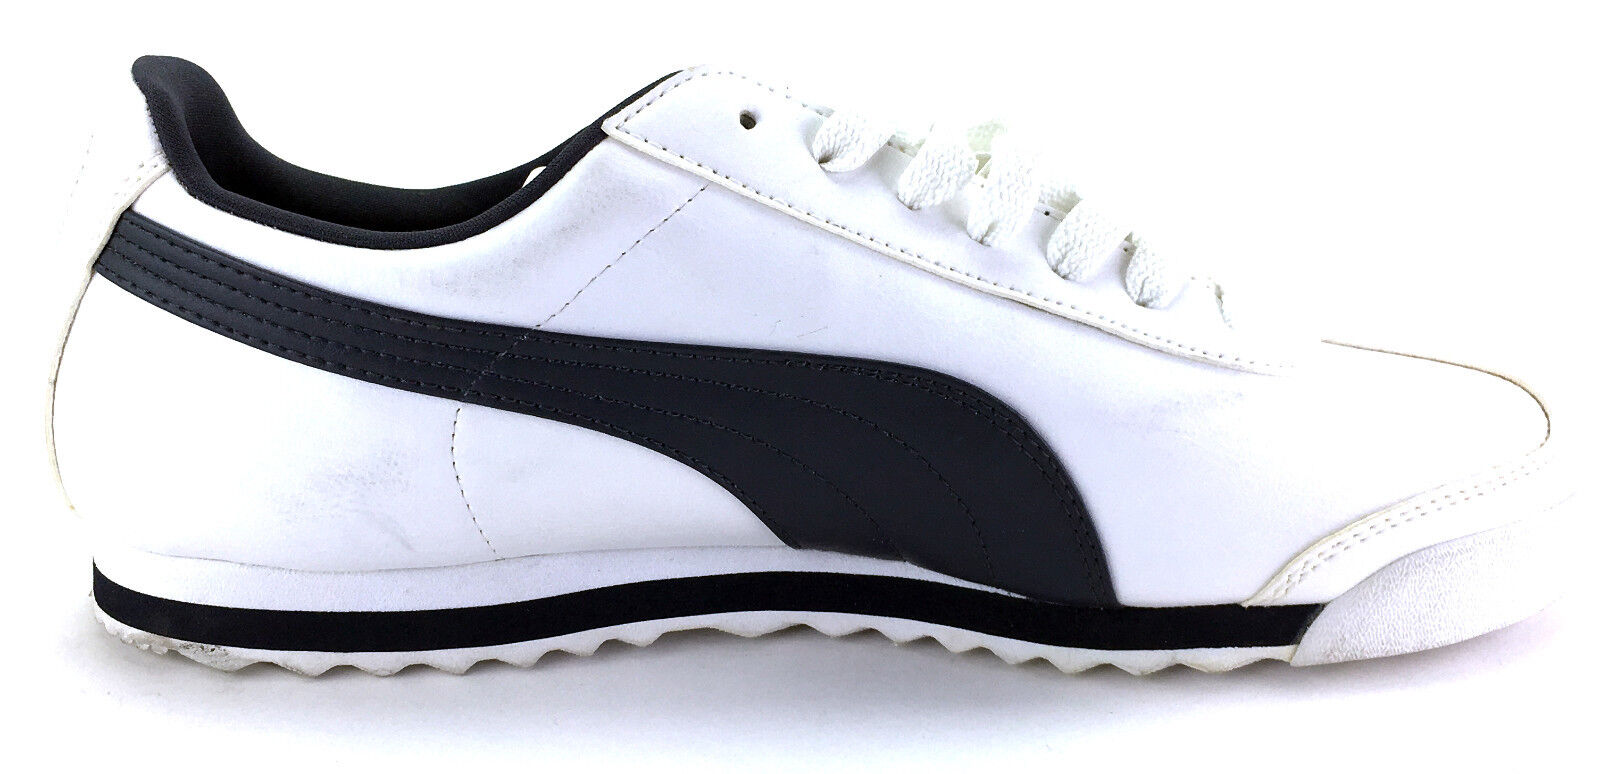 0cdf91dda88e ... Puma Shoes Roma Basic Basic Basic Retro White Black Sneakers Size 10  dc1c5e ...